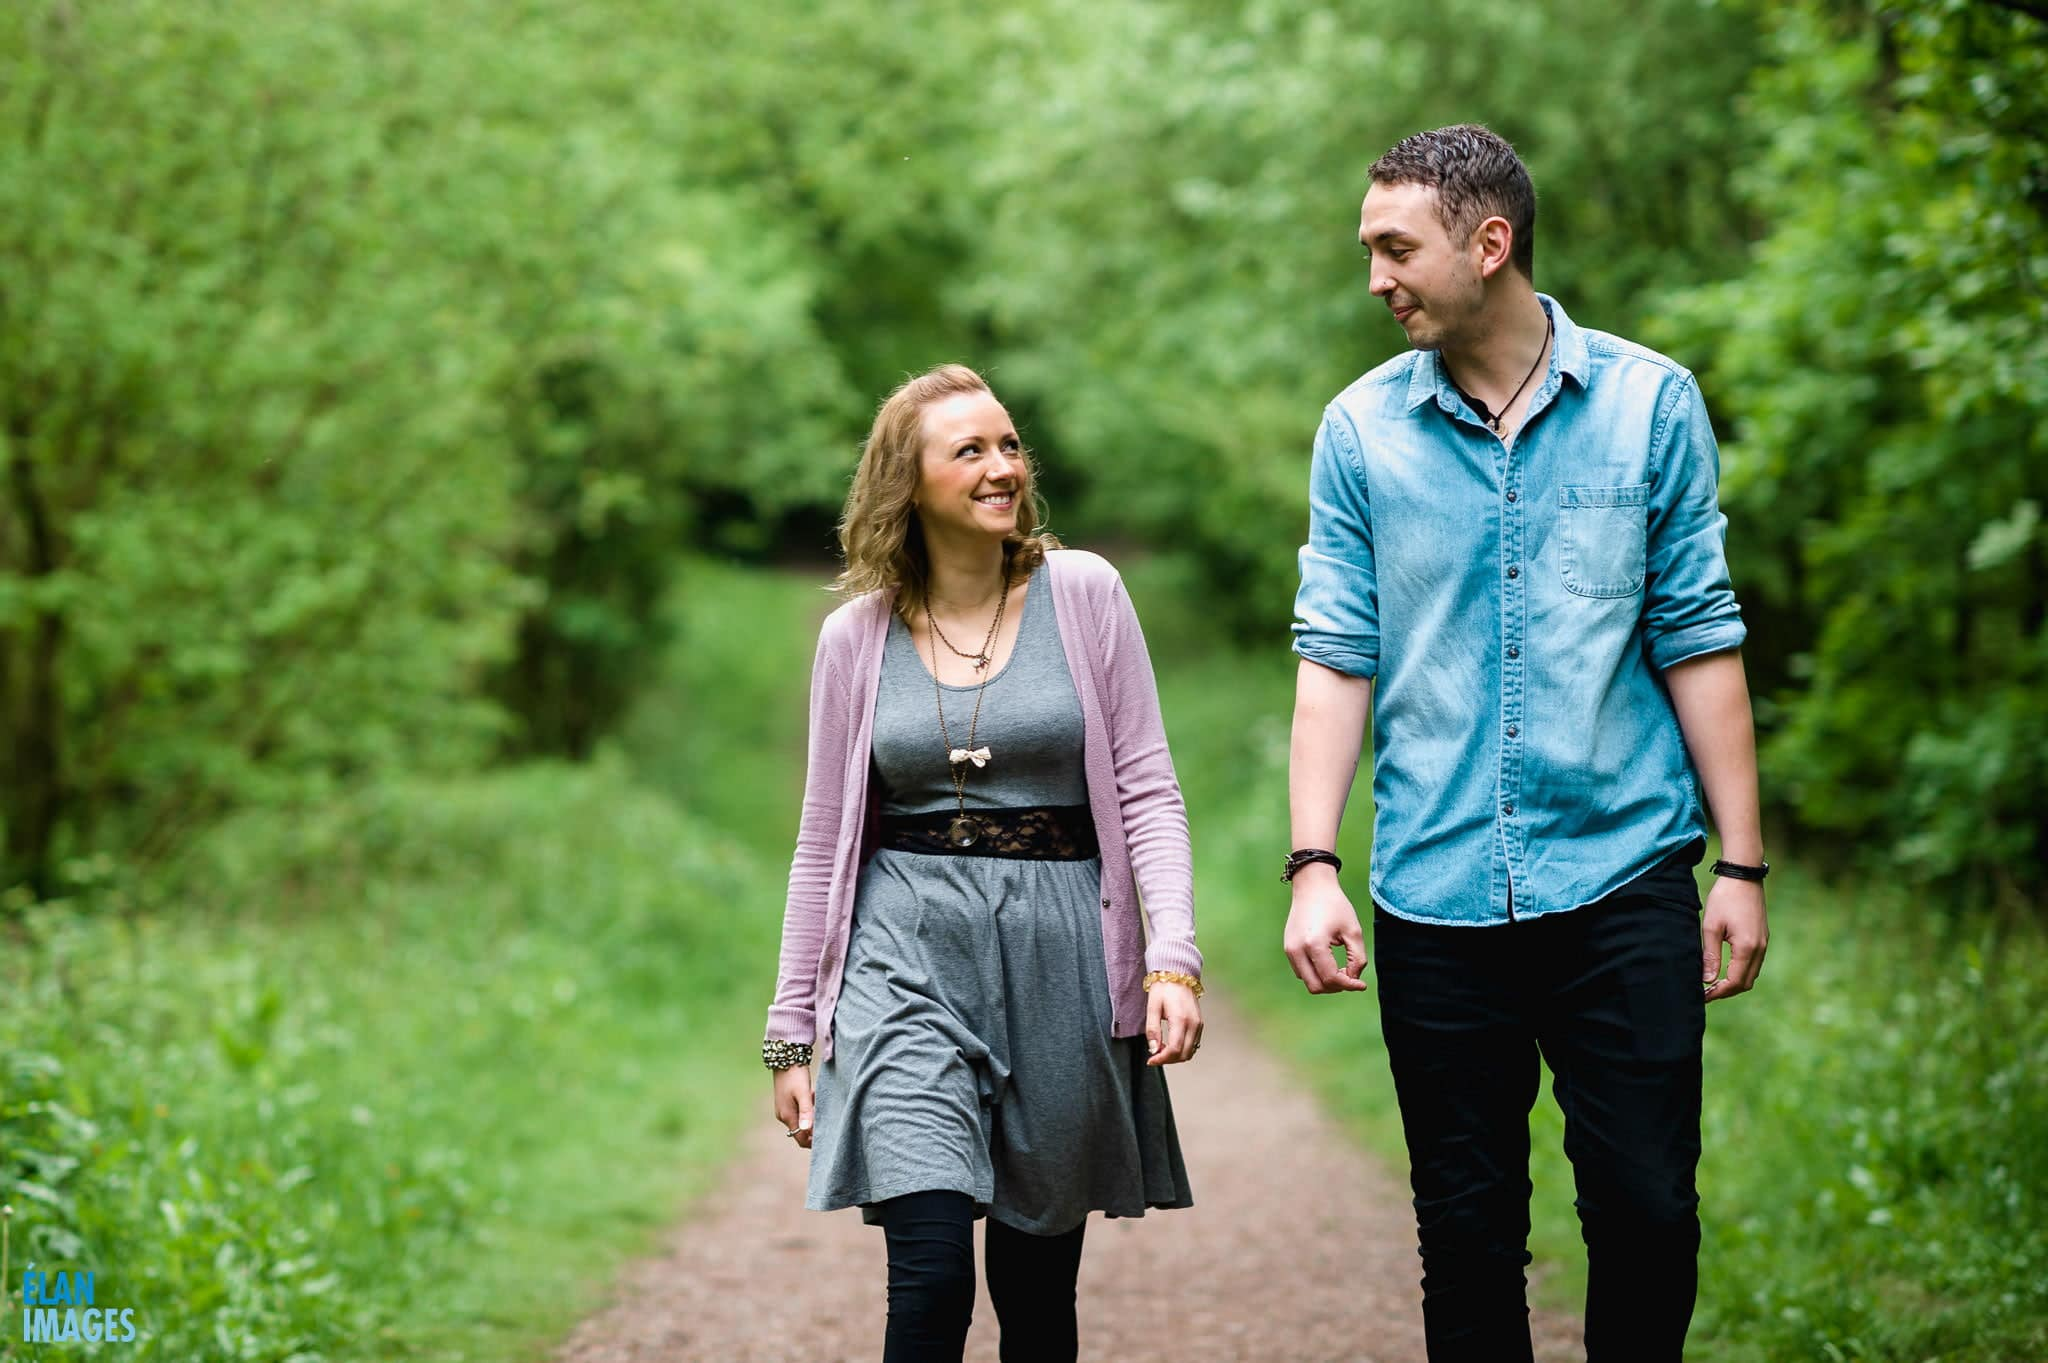 Engagement Photo Shoot in the Bluebell Woods near Bristol 1